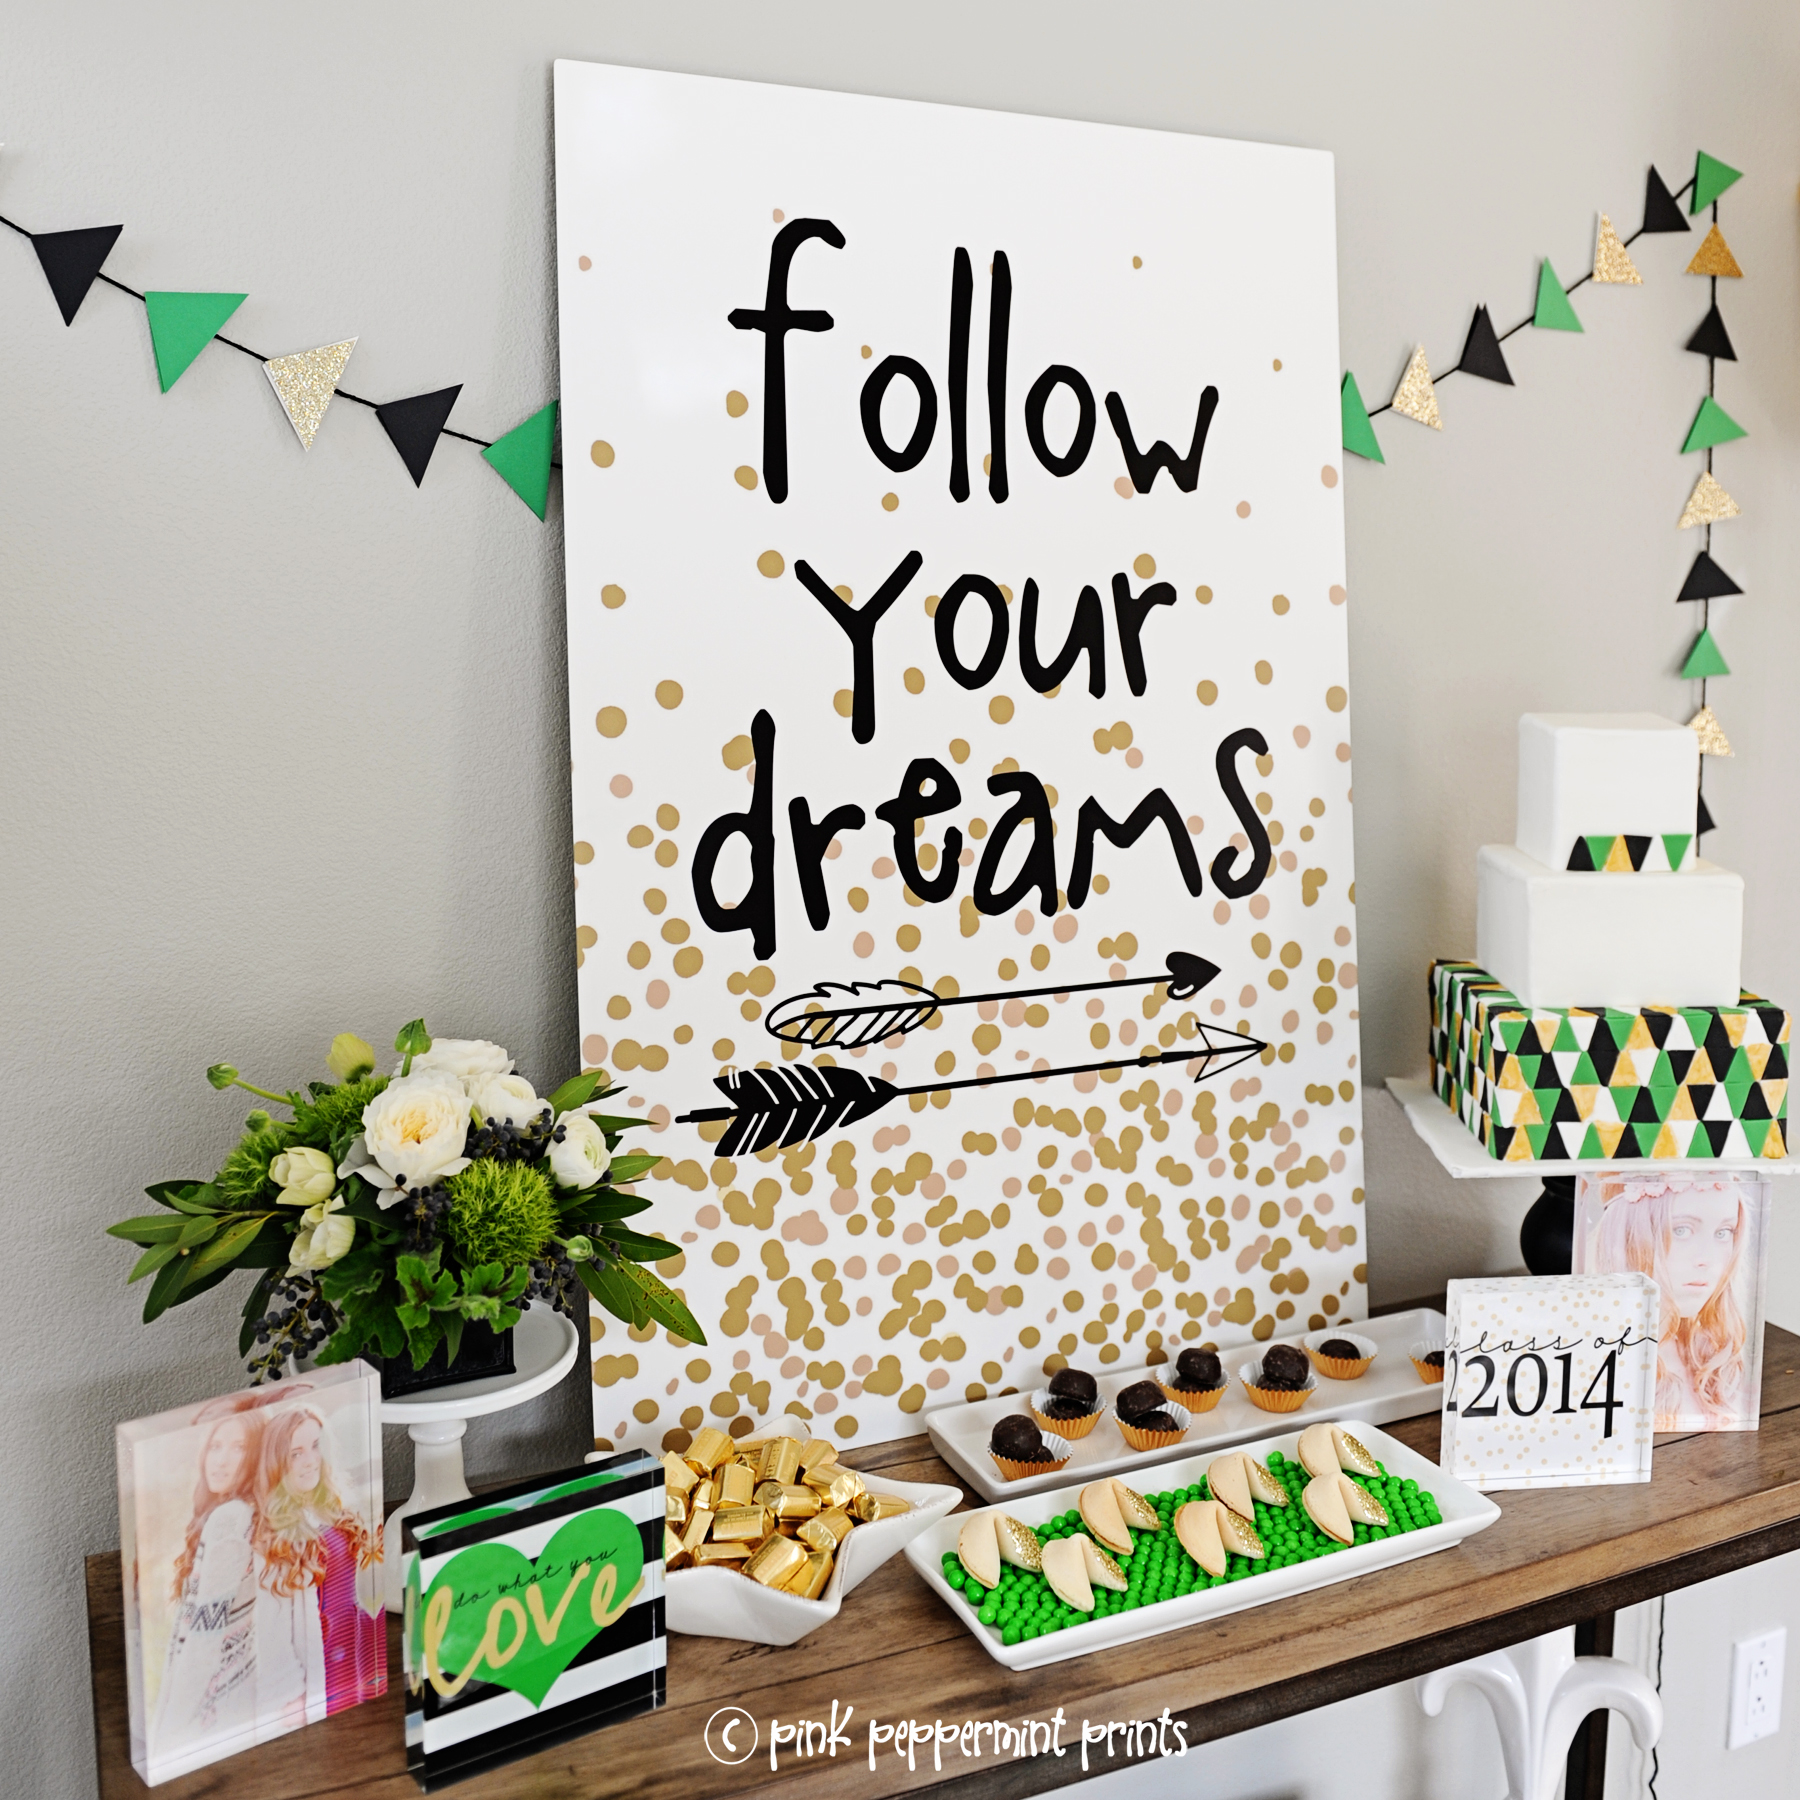 Graduation Party Ideas : Follow Your Dreams - Pink Peppermint Design